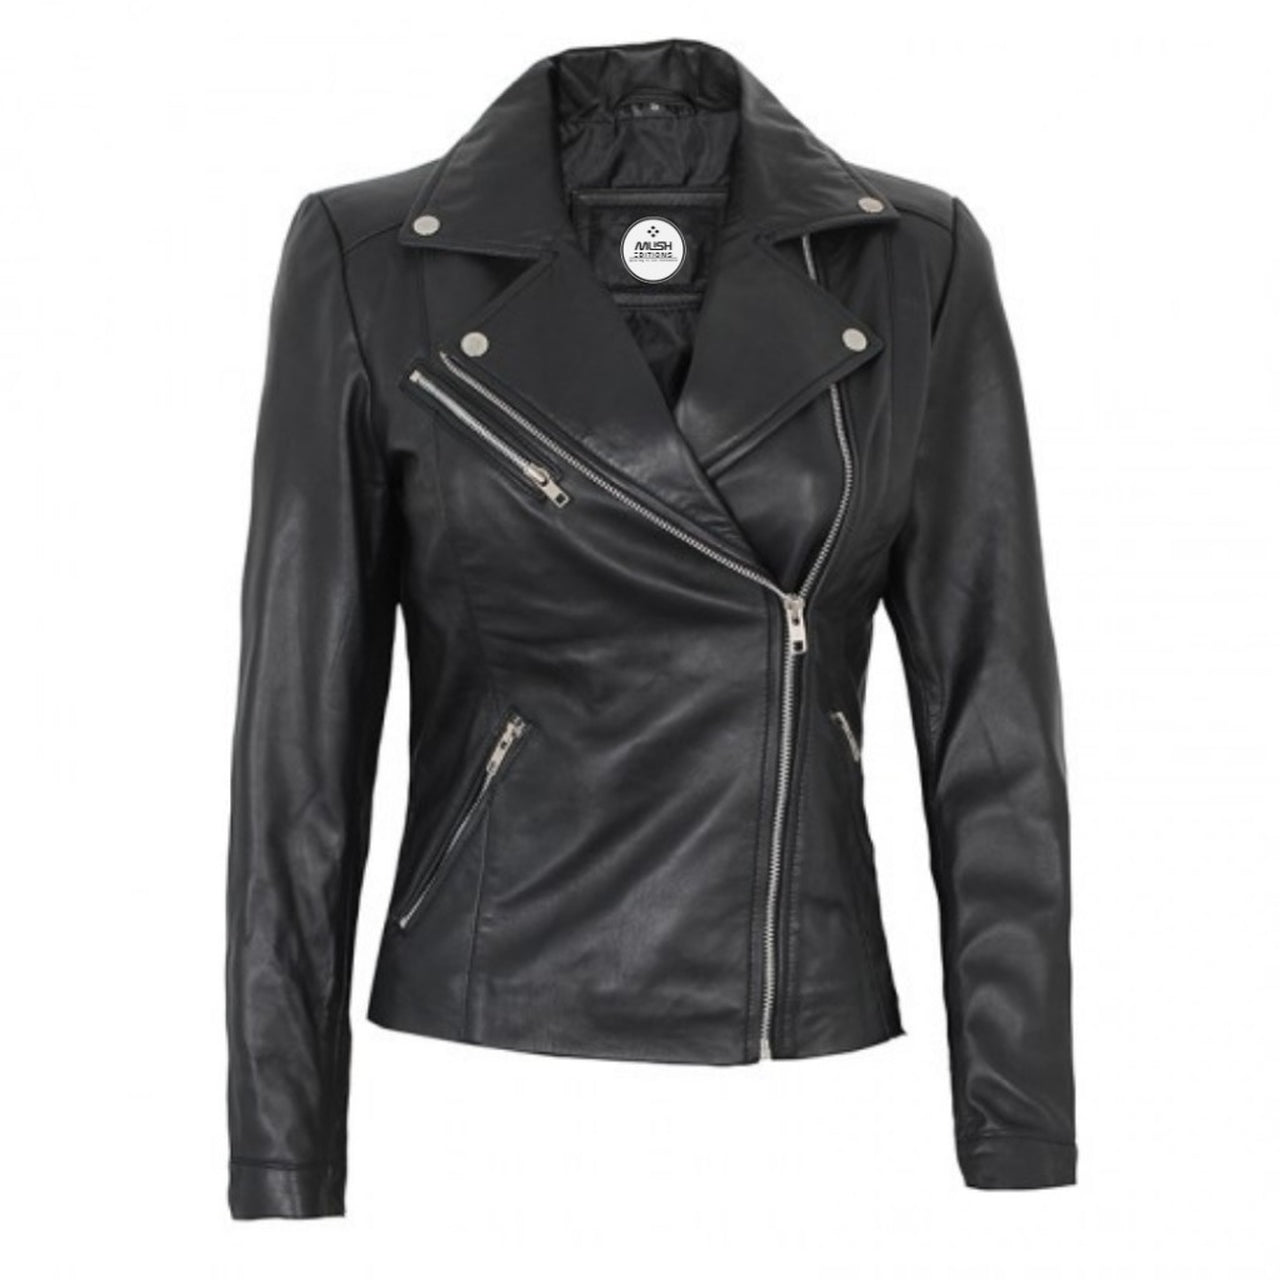 Black Real Leather Jacket For Women - Leather Jacket